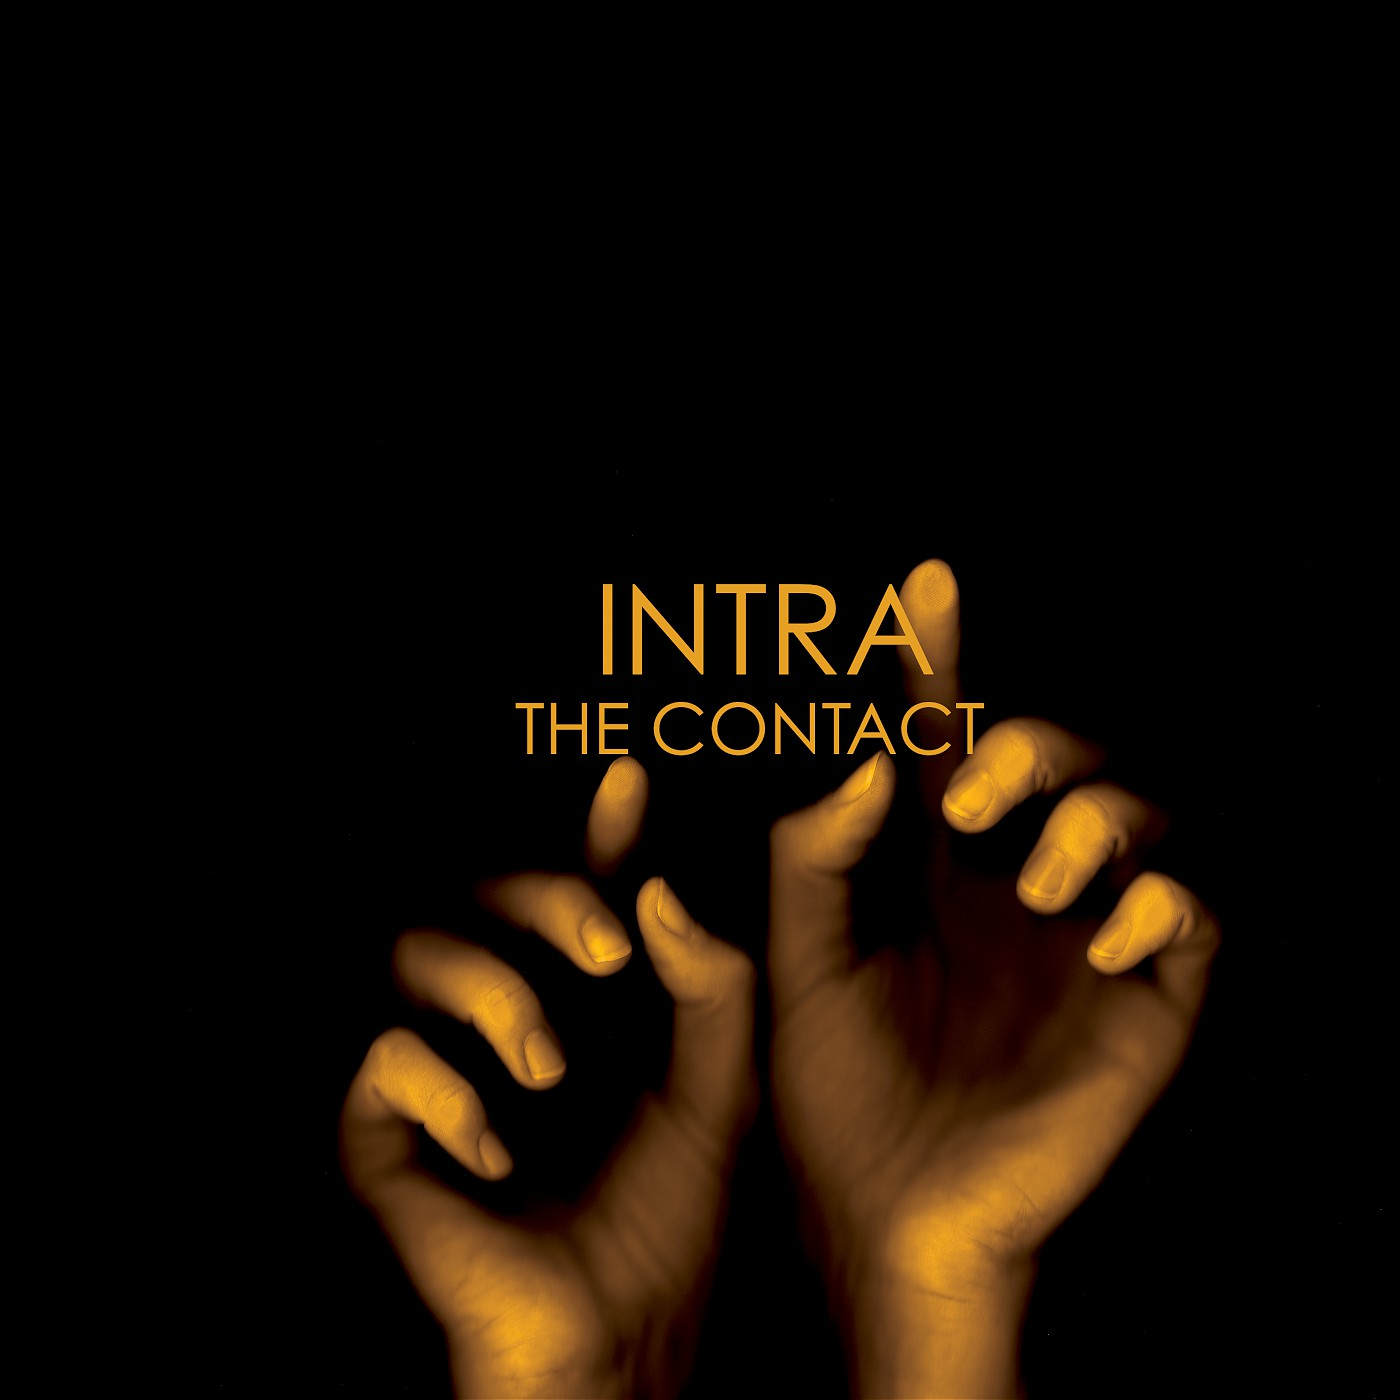 intra the contact-1400